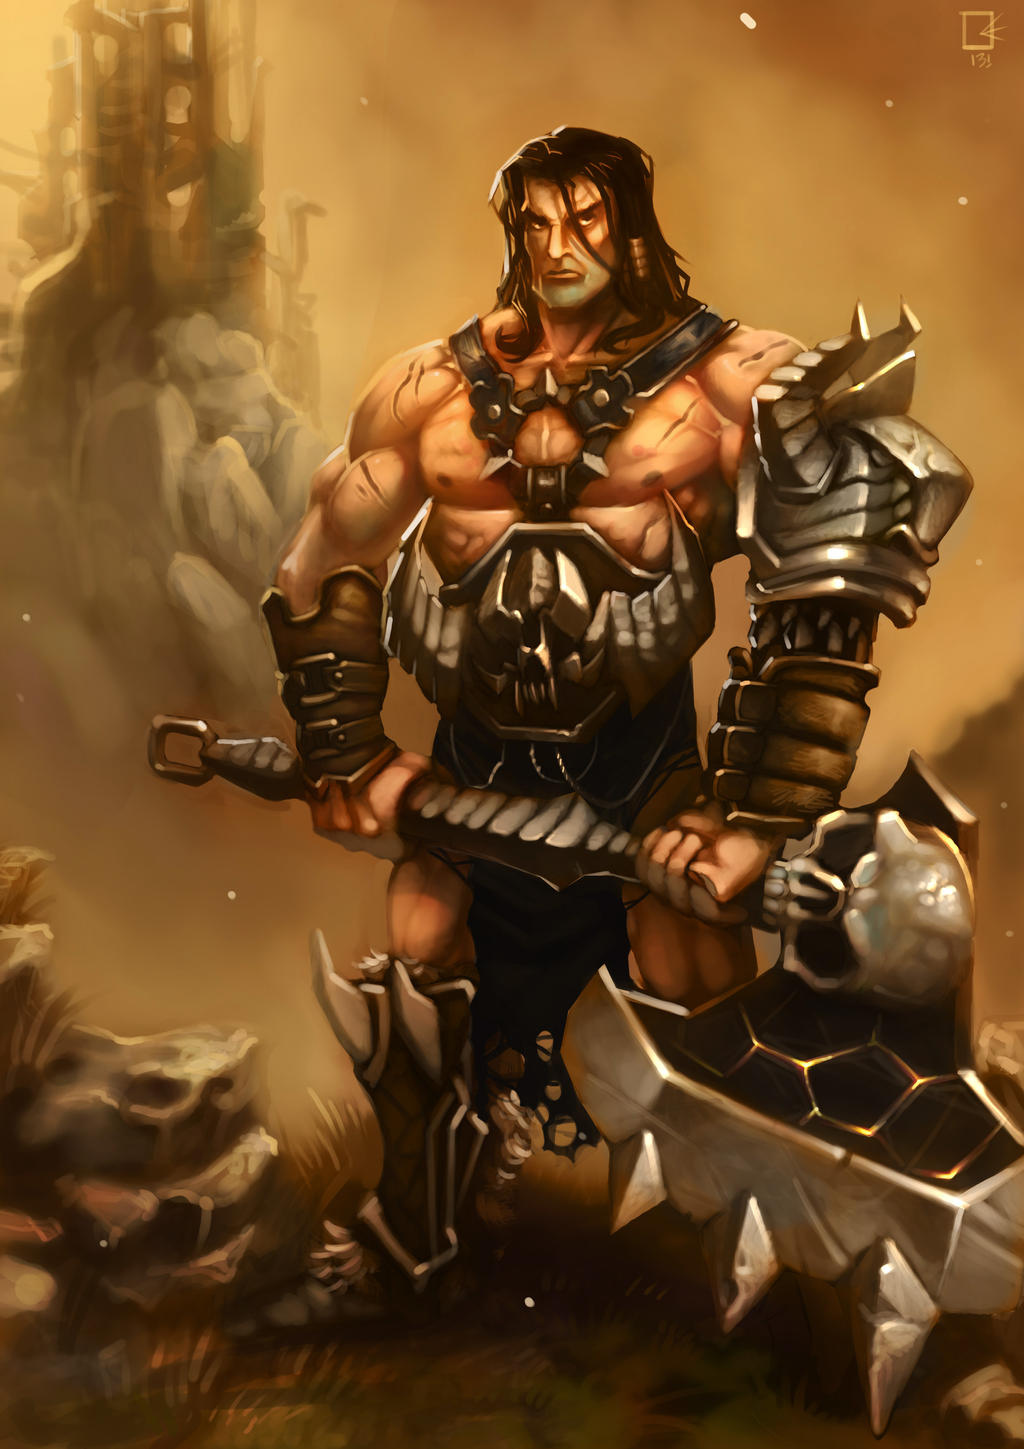 BARBARIAN by gianlucaromano